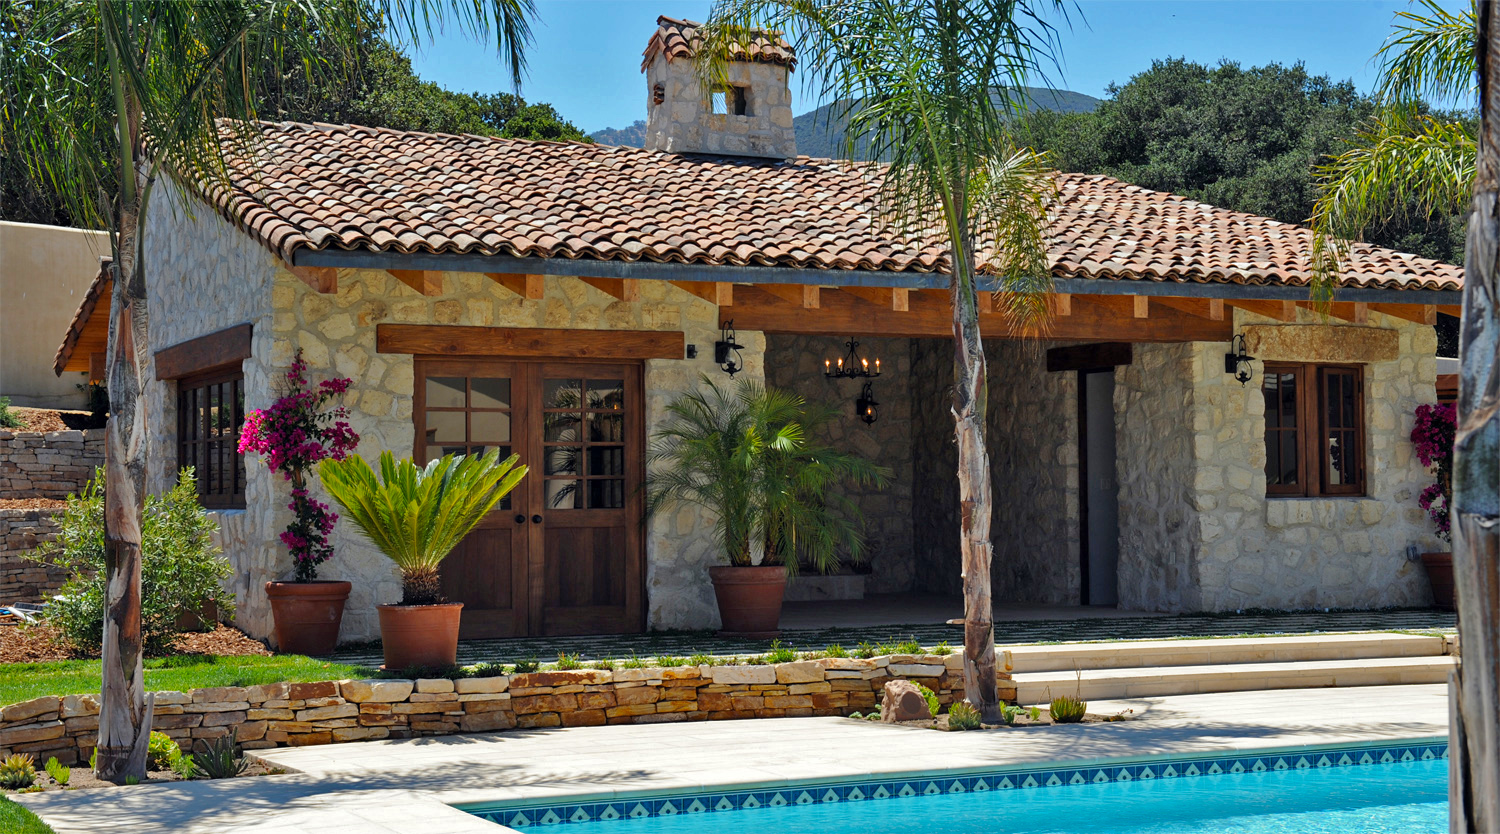 Inspired by centuries old Tuscan farmhouses in Italy. Pool Pavilion,Swimming Pool, and surrounding landscaping.  Building Design & Construction, Landscaping Design & Installation.